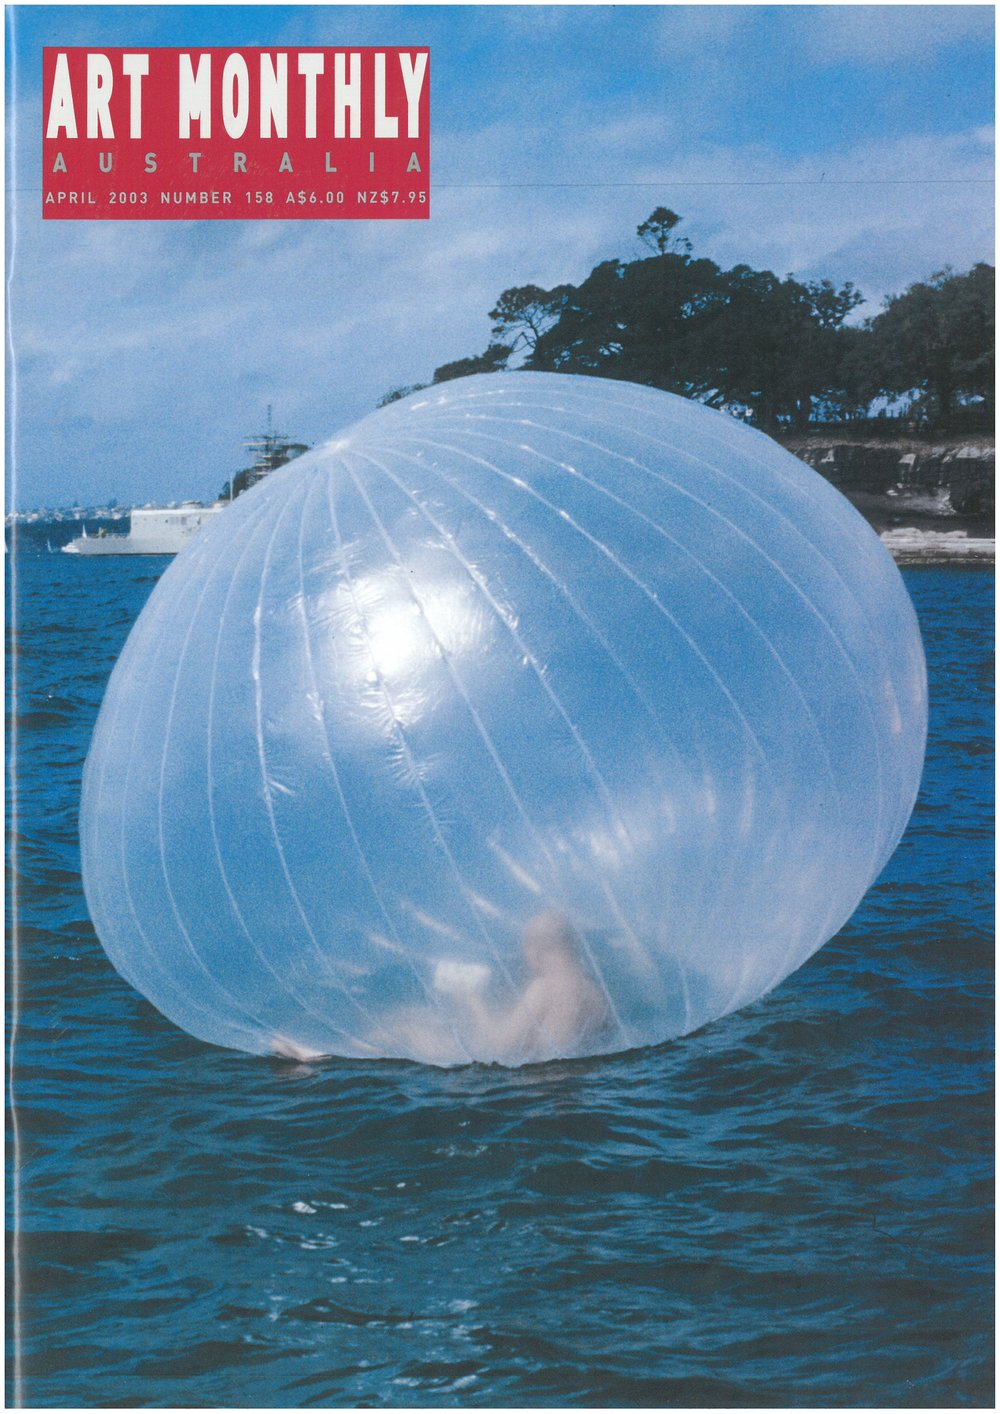 Issue 158 April 2003